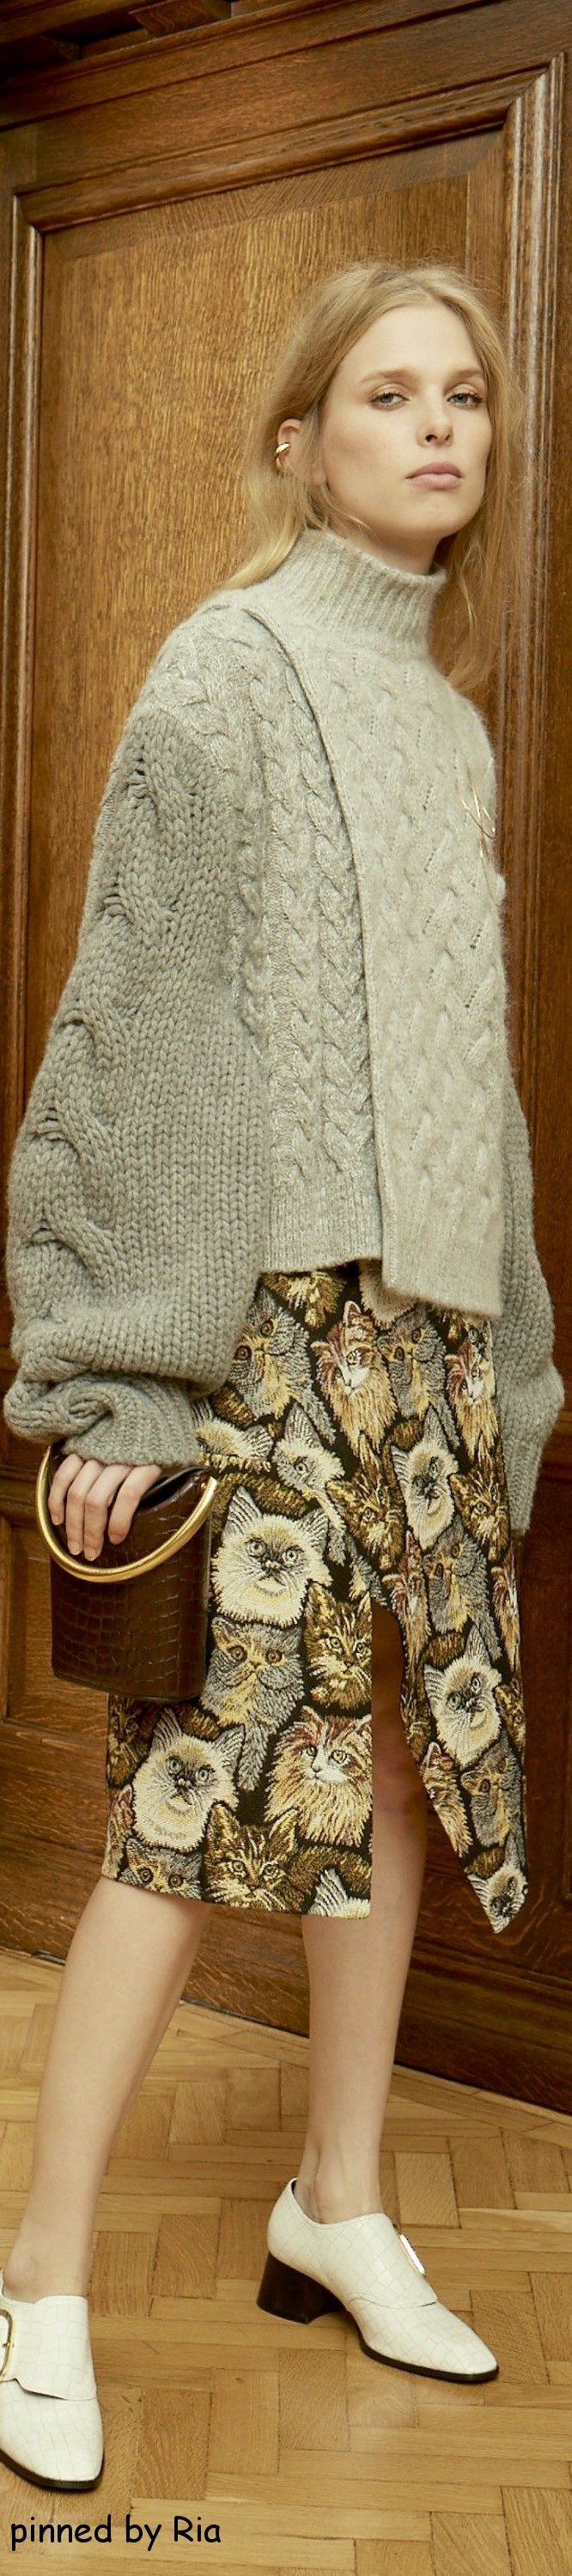 Stella McCartney Pre Fall 2016 l Ria